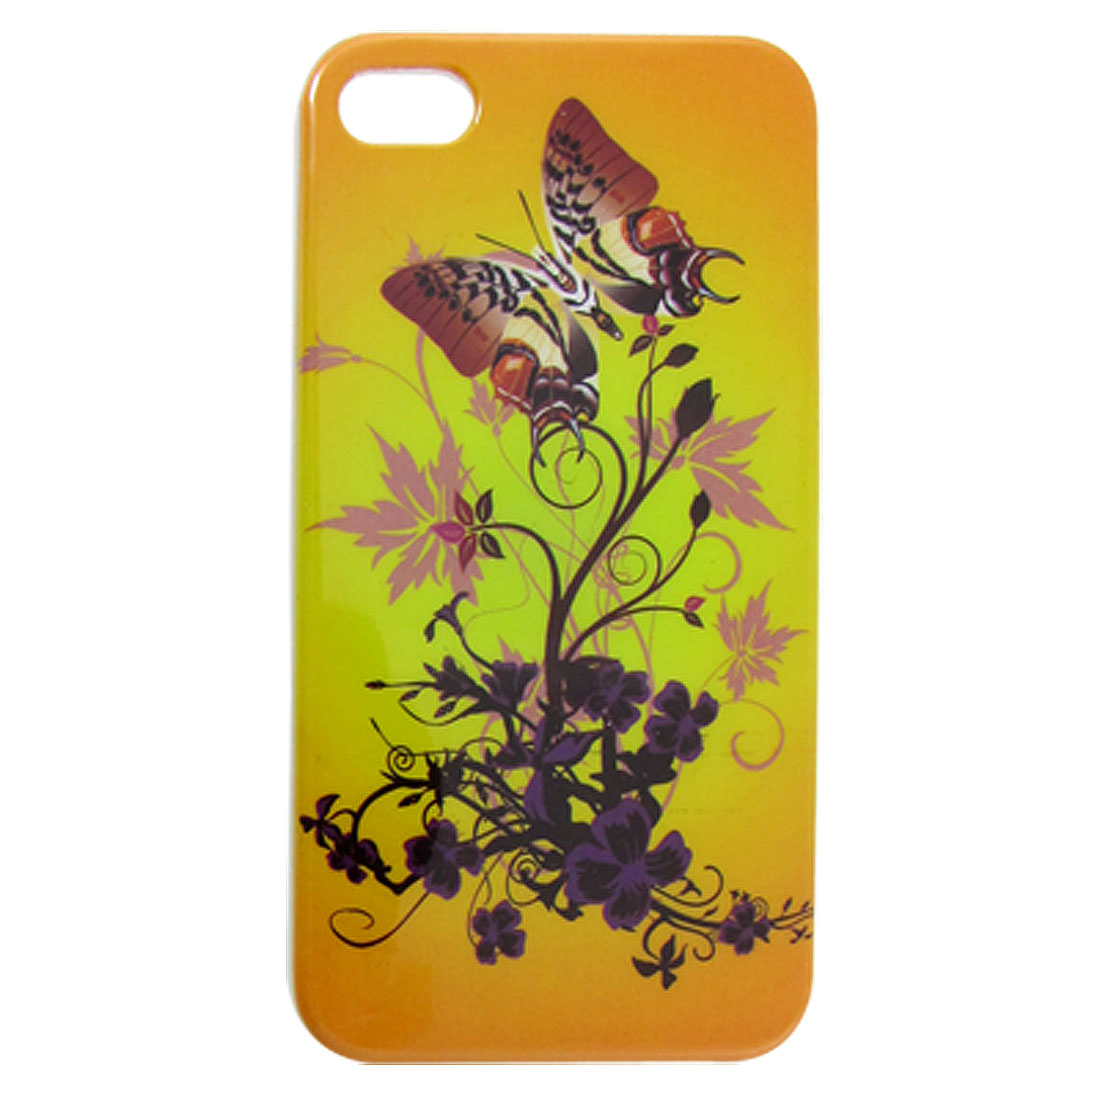 IMD Flower Butterfly Pattern Hard Plastic Back Case for iPhone 4 4G 4S